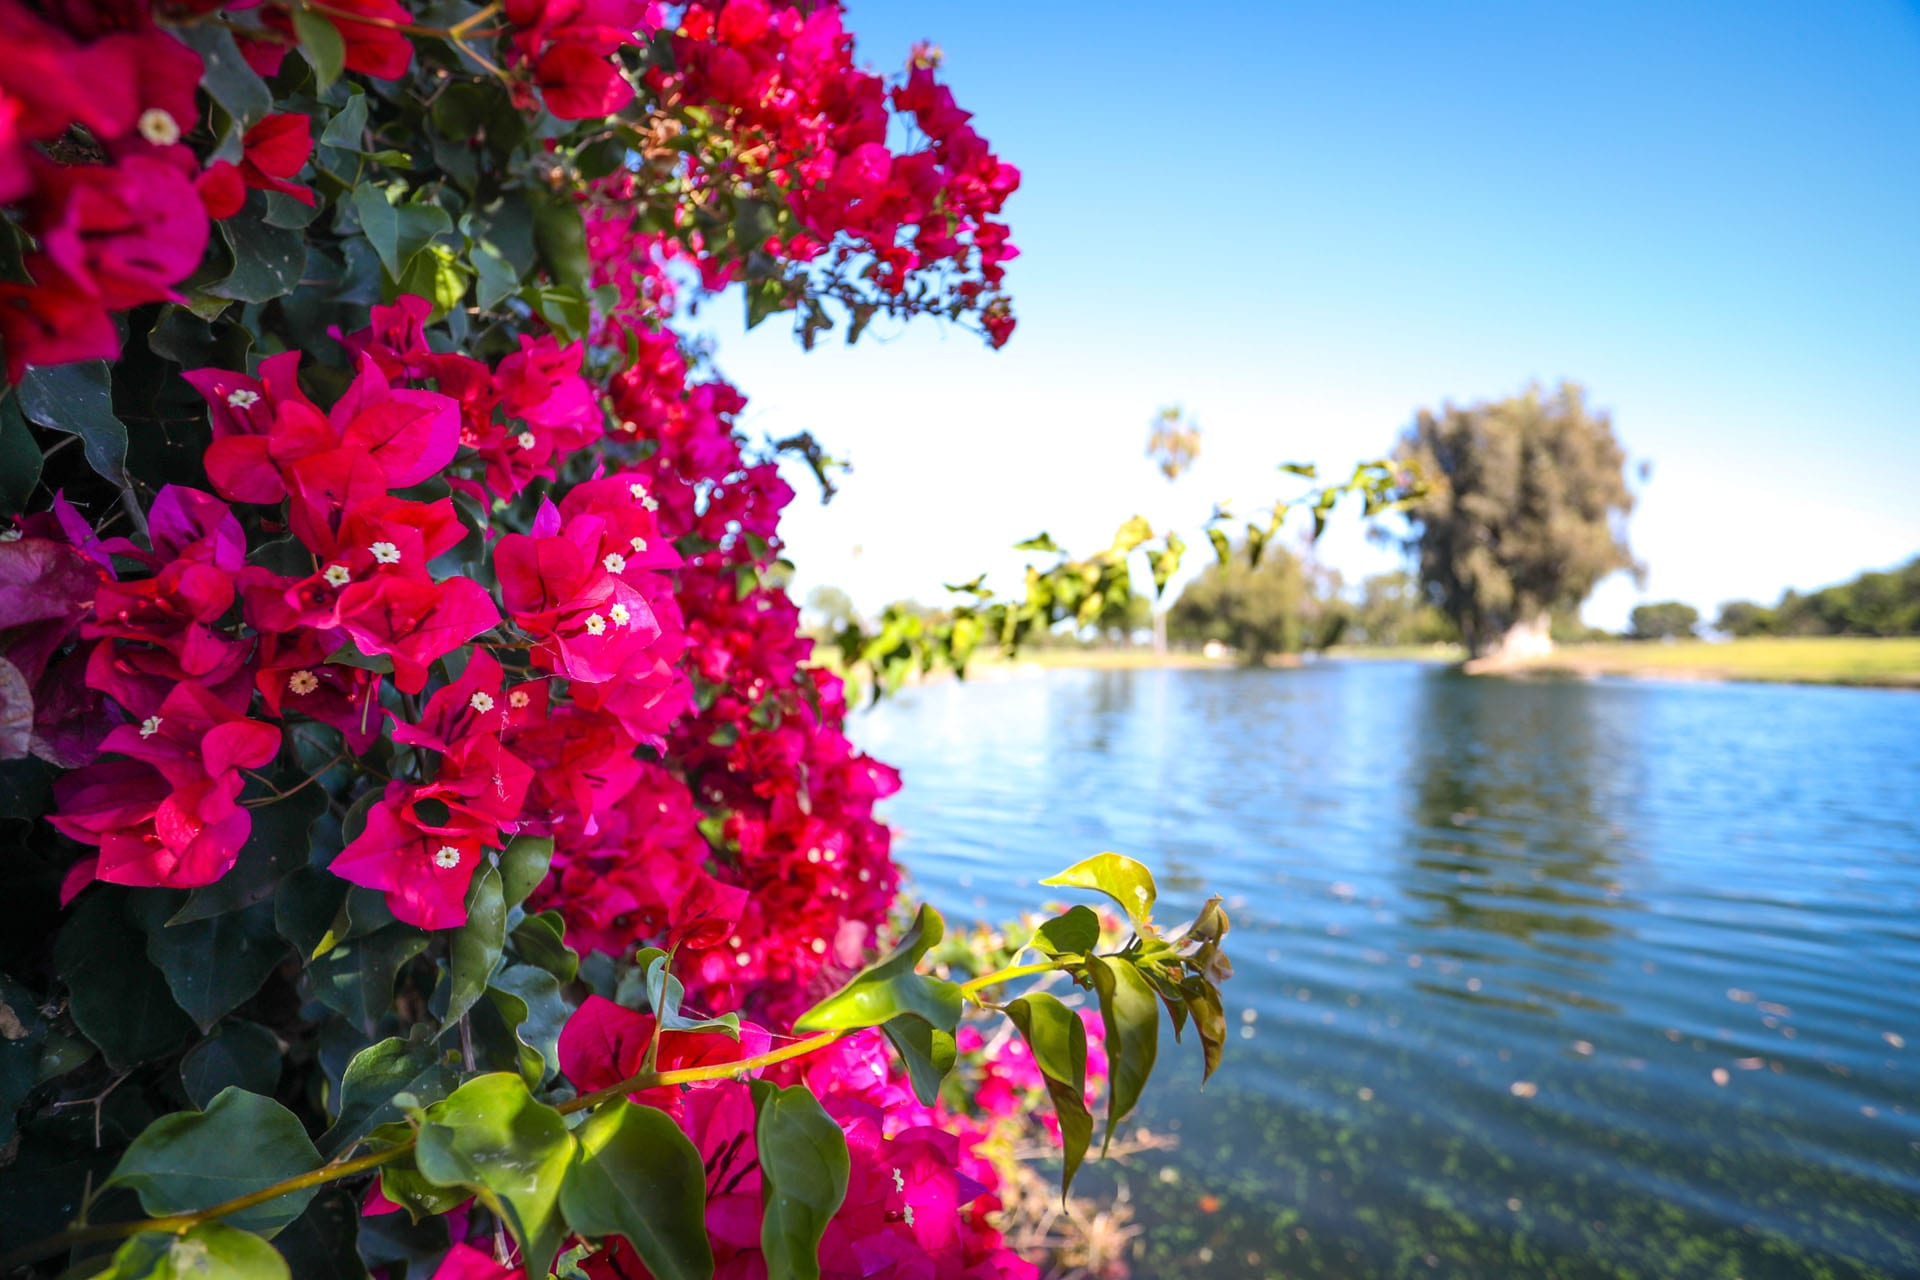 Magenta flowers among a lake